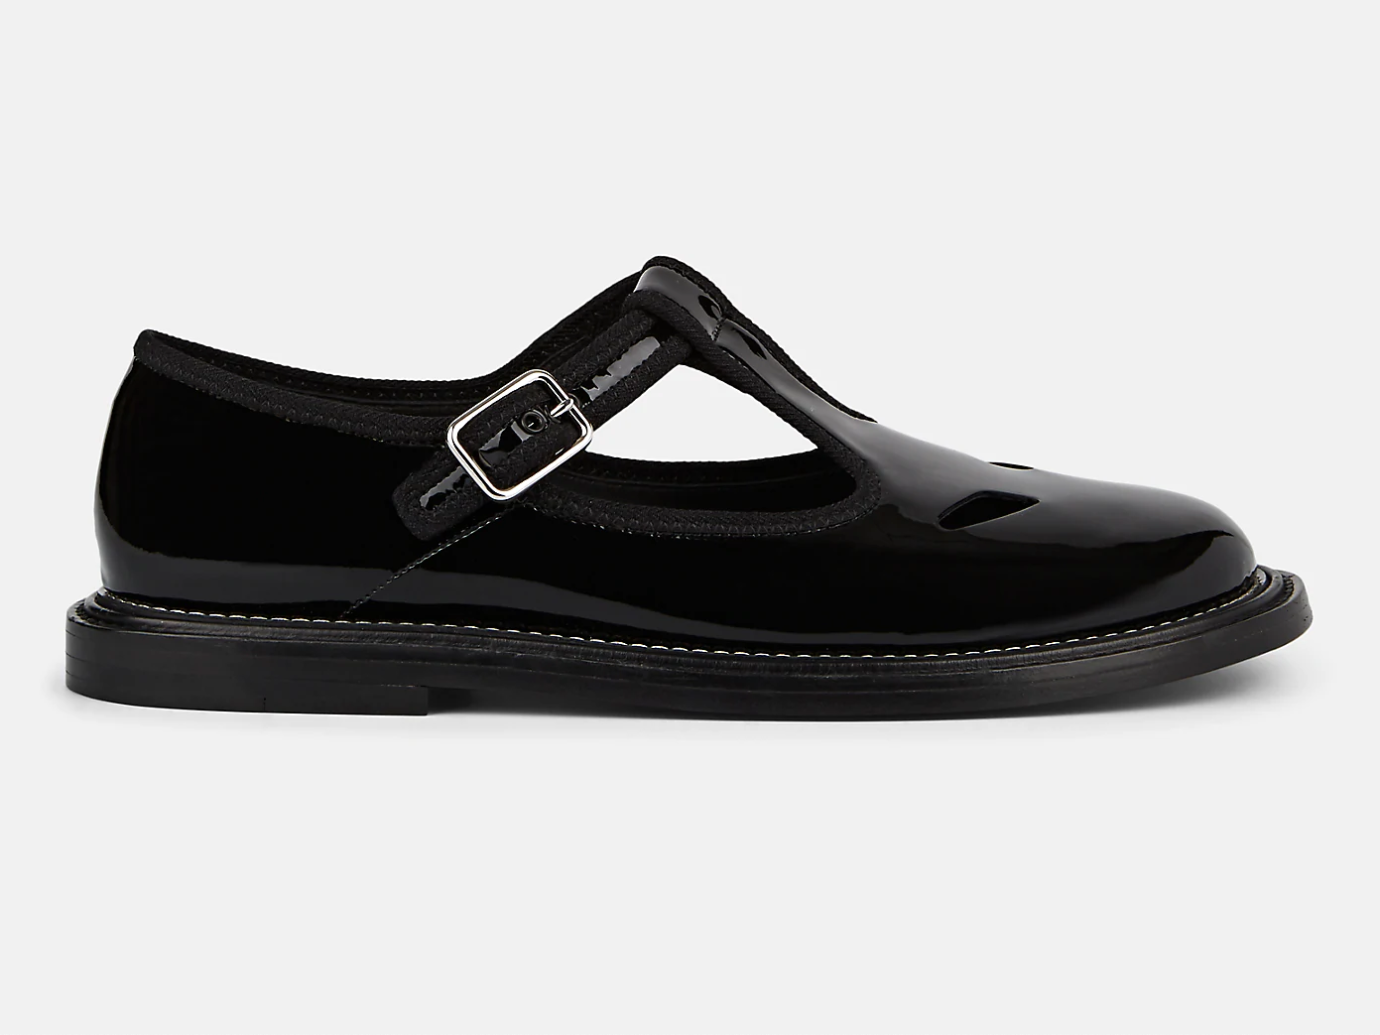 Burberry Alannis Patent Leather Mary Jane Flats